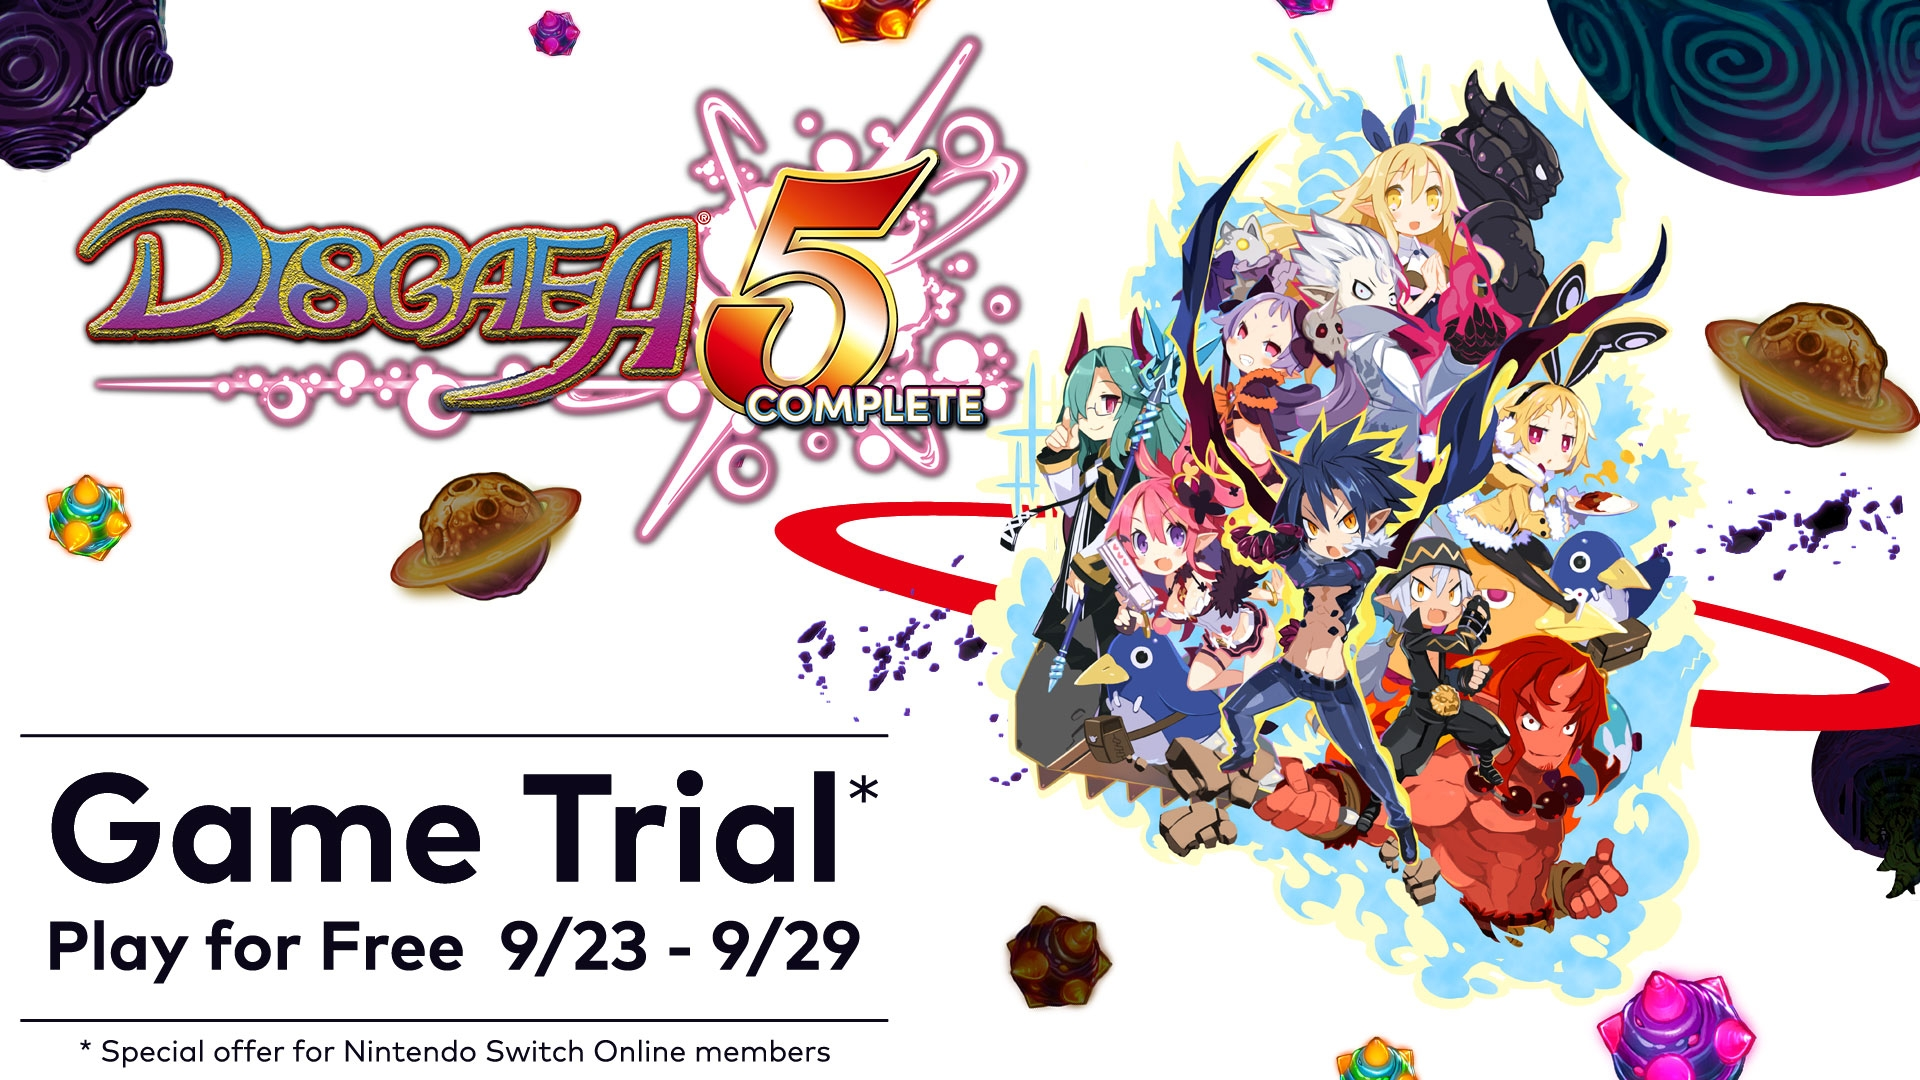 Disgaea 5 Complete Game Trial Available For Nintendo Switch Online Subscribers For One Week